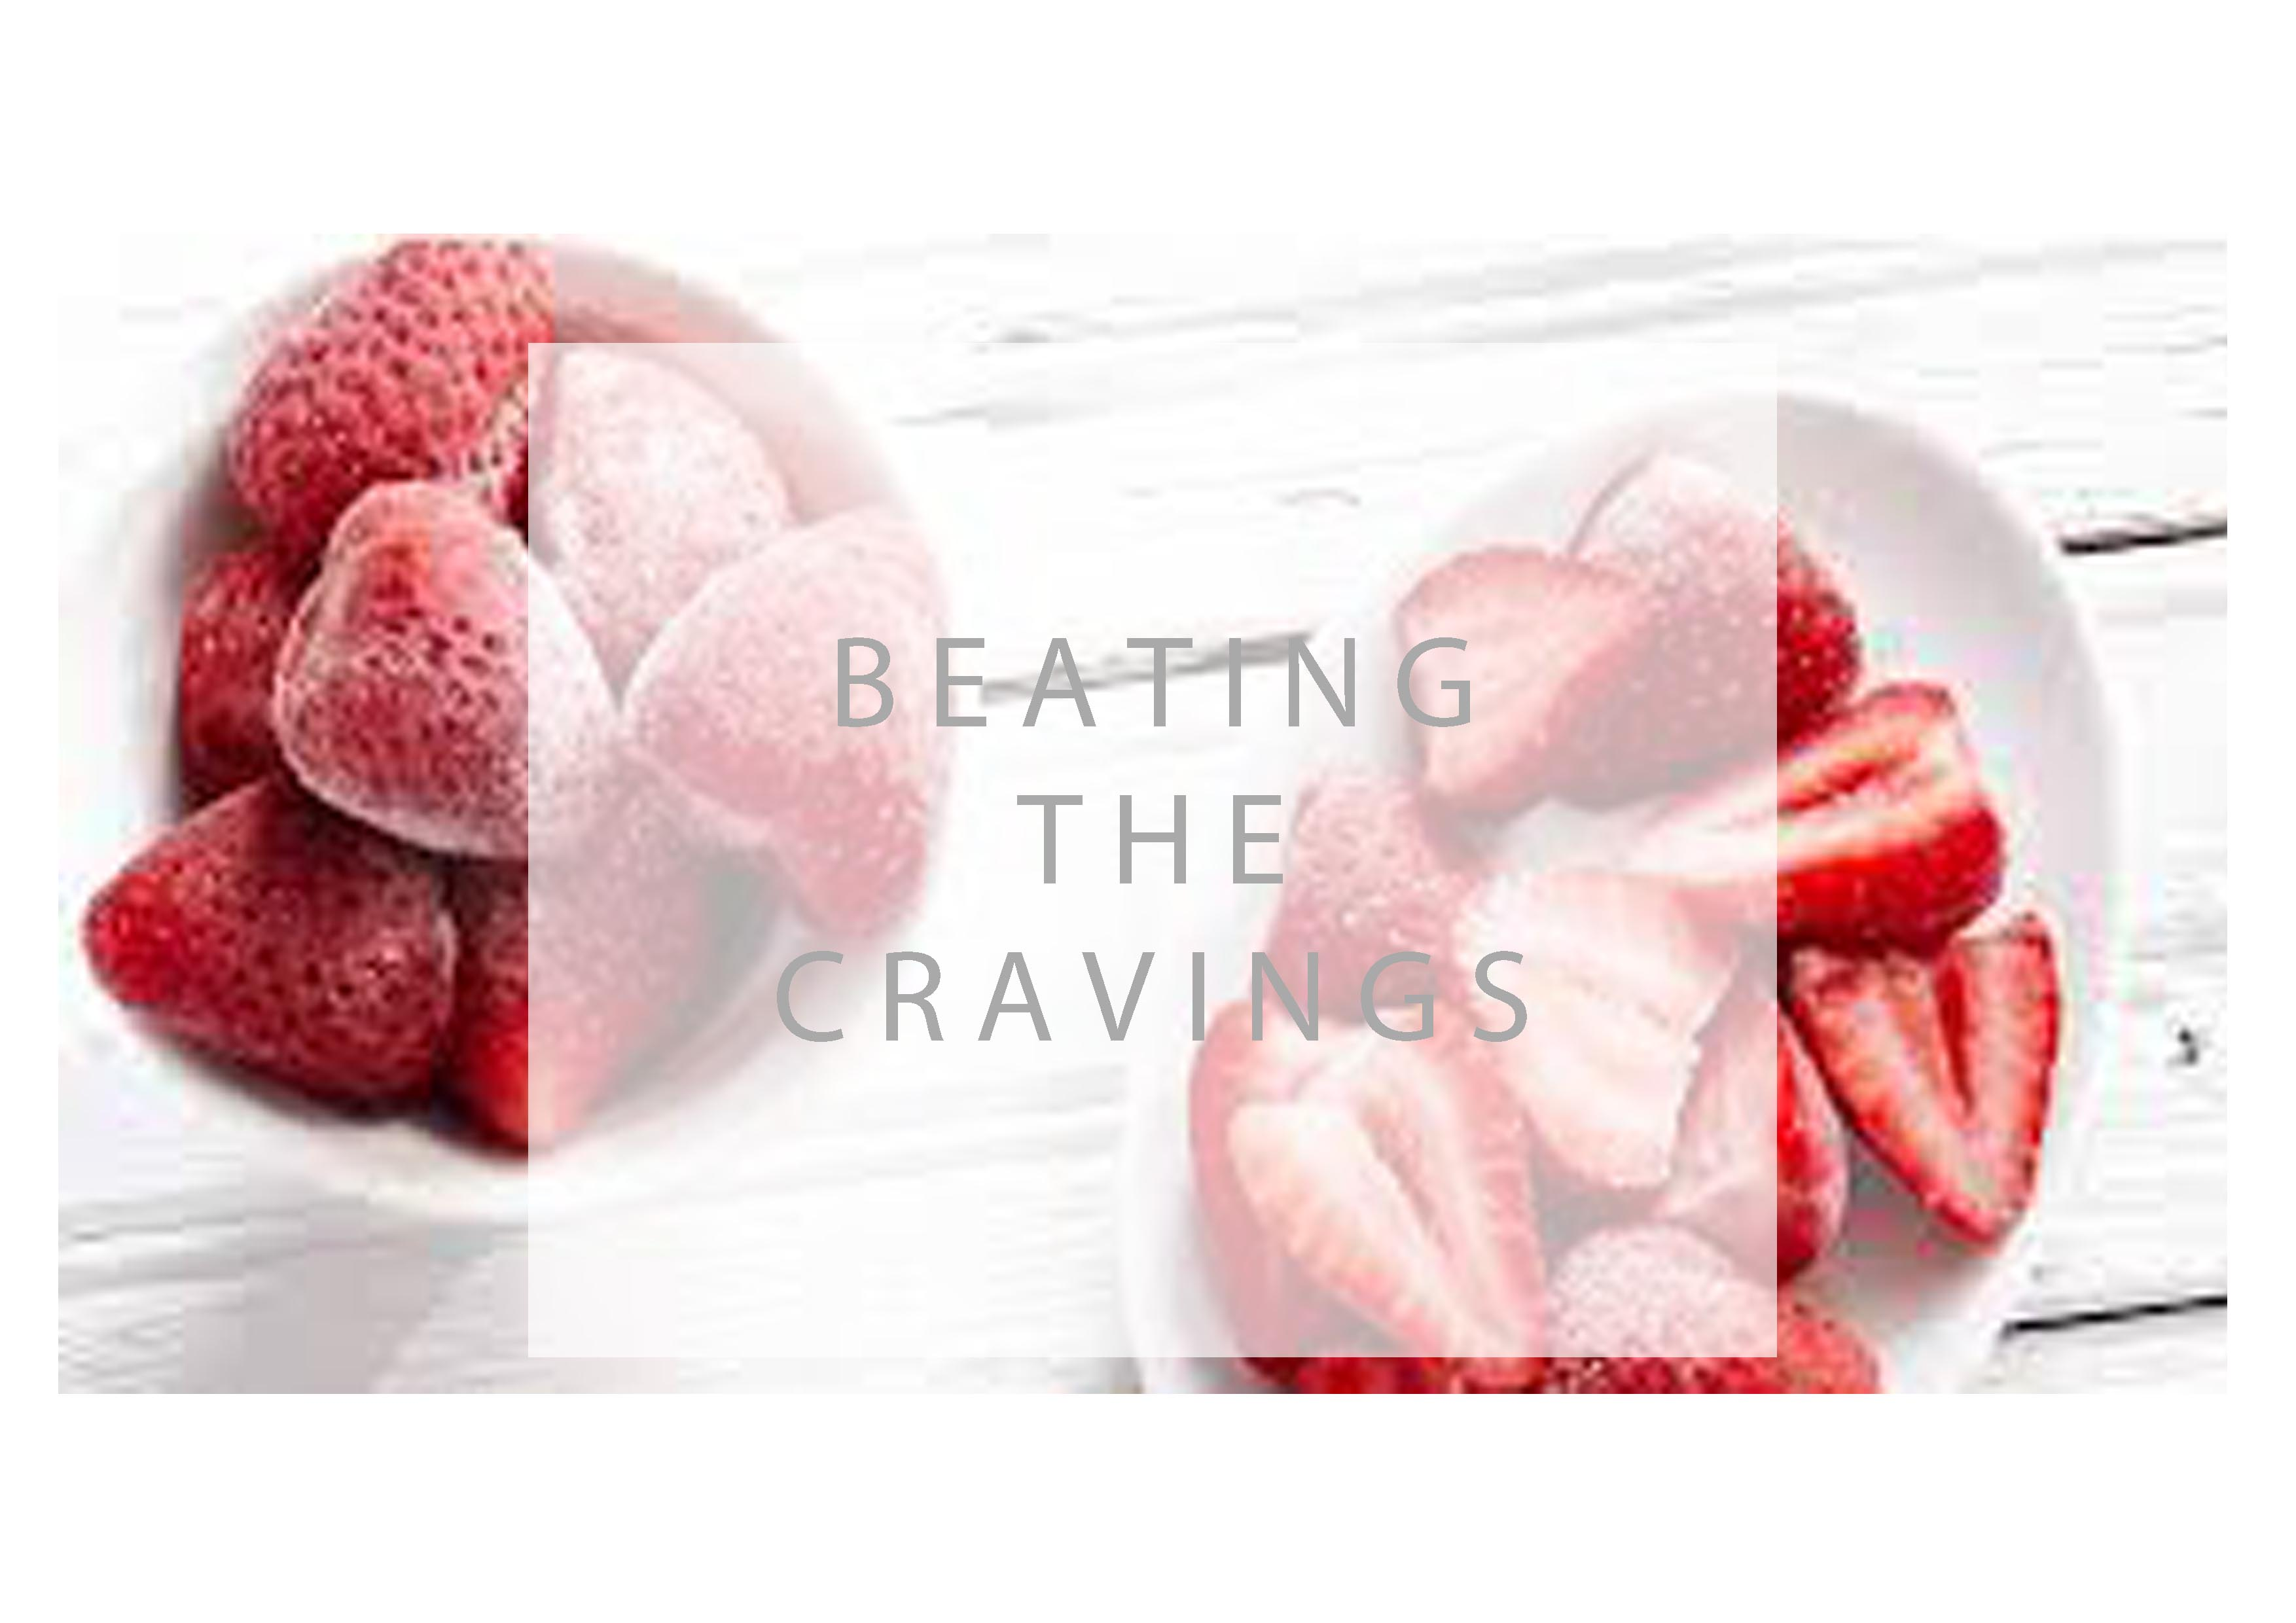 Beating the Cravings